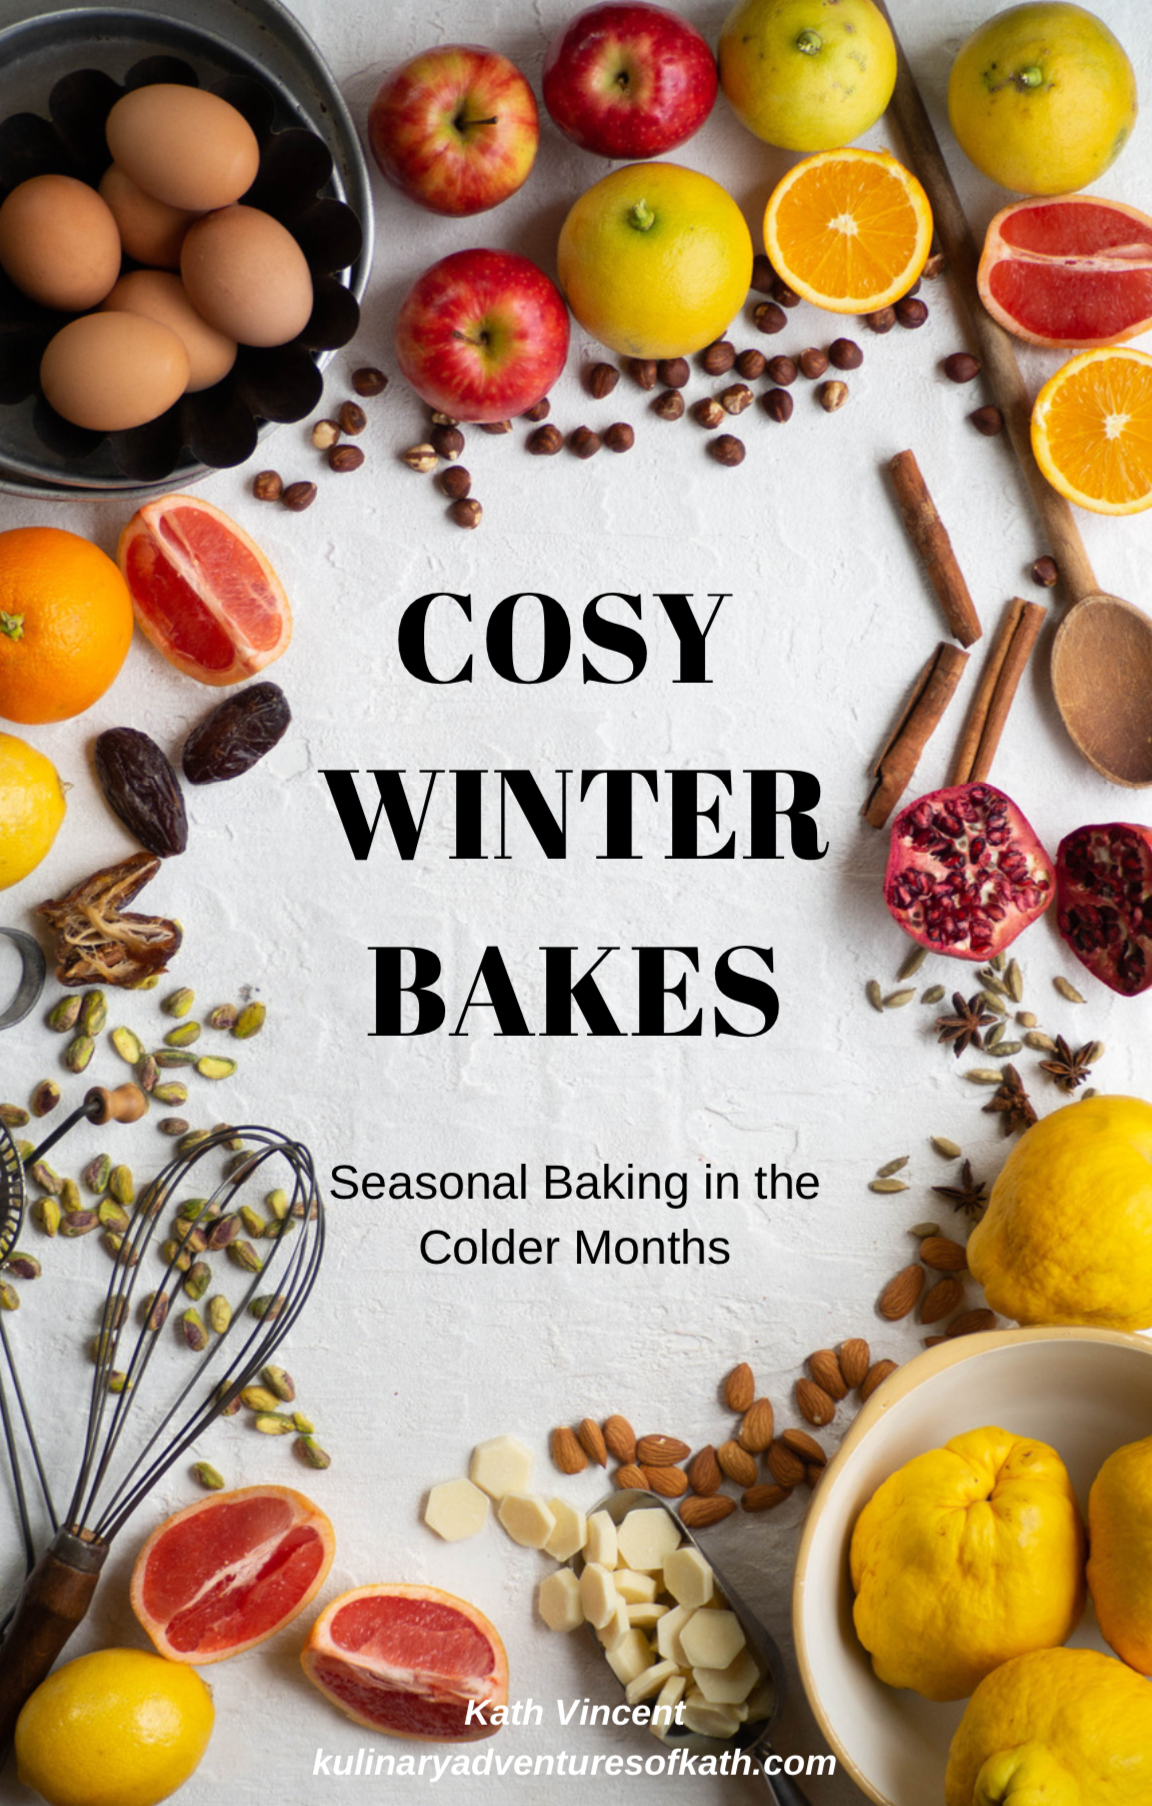 New Recipe eBook - Cosy Winter Bakes